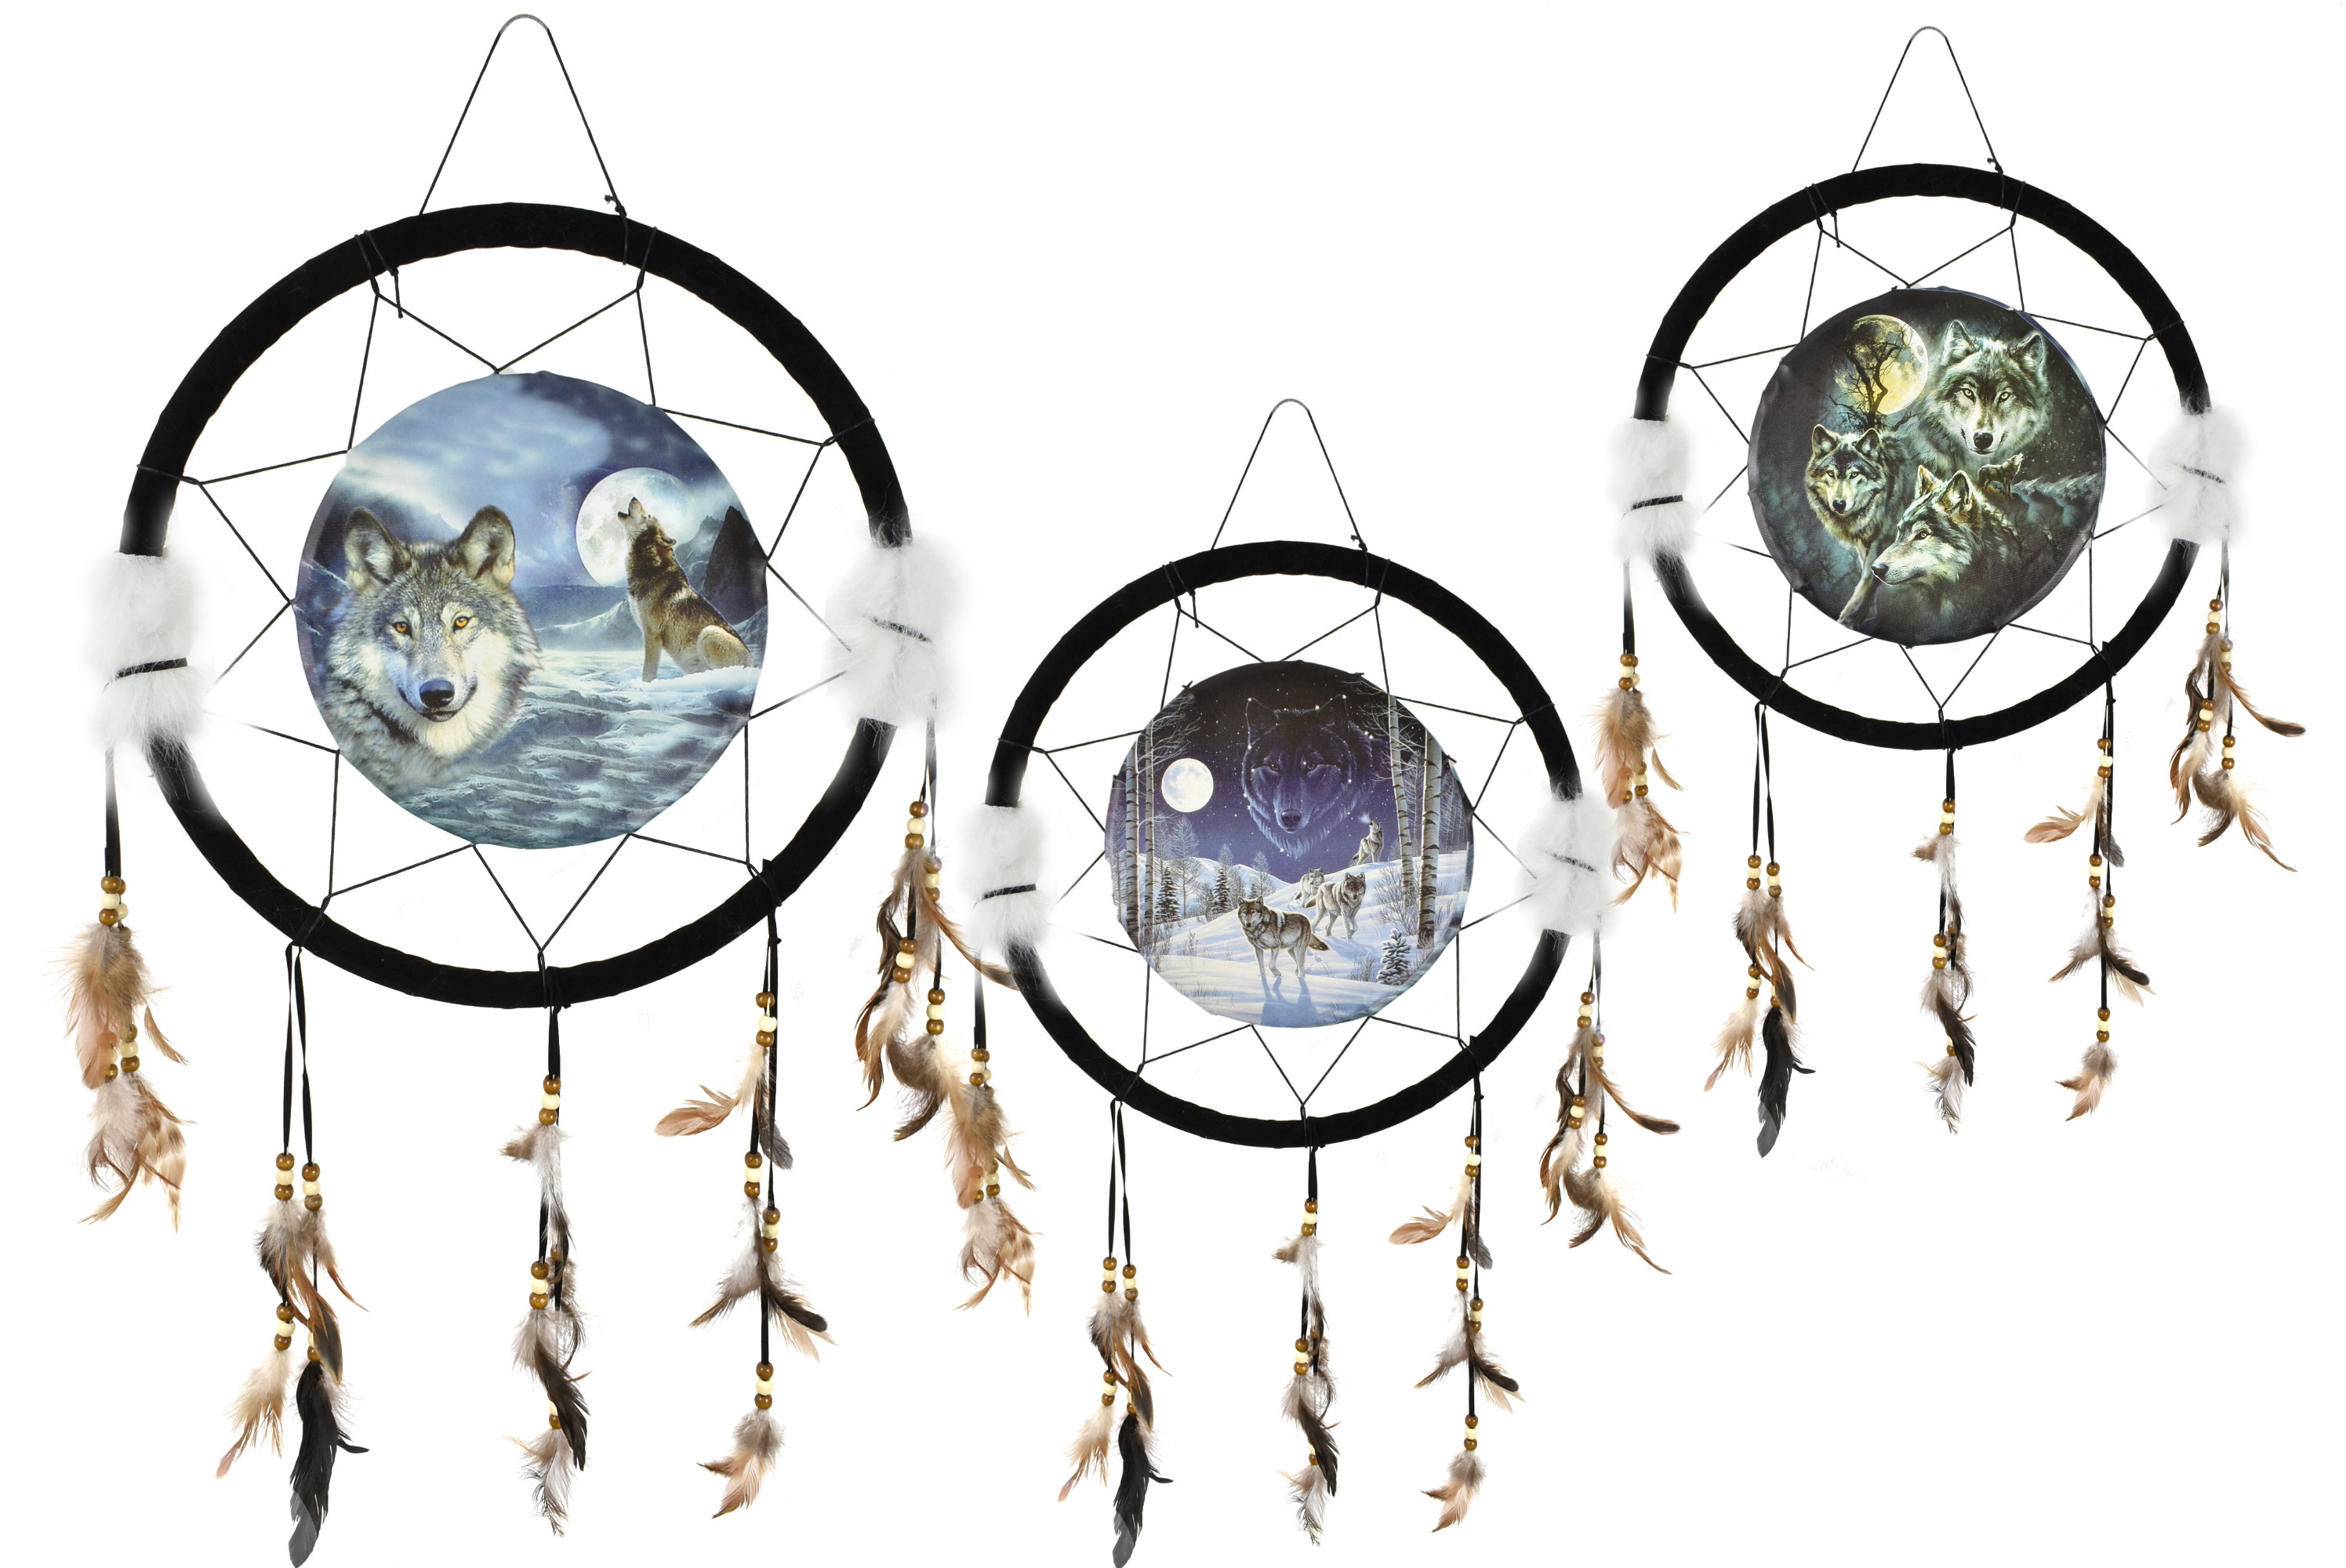 17 Inch Dream Catcher With Canvas Picture In Polybag